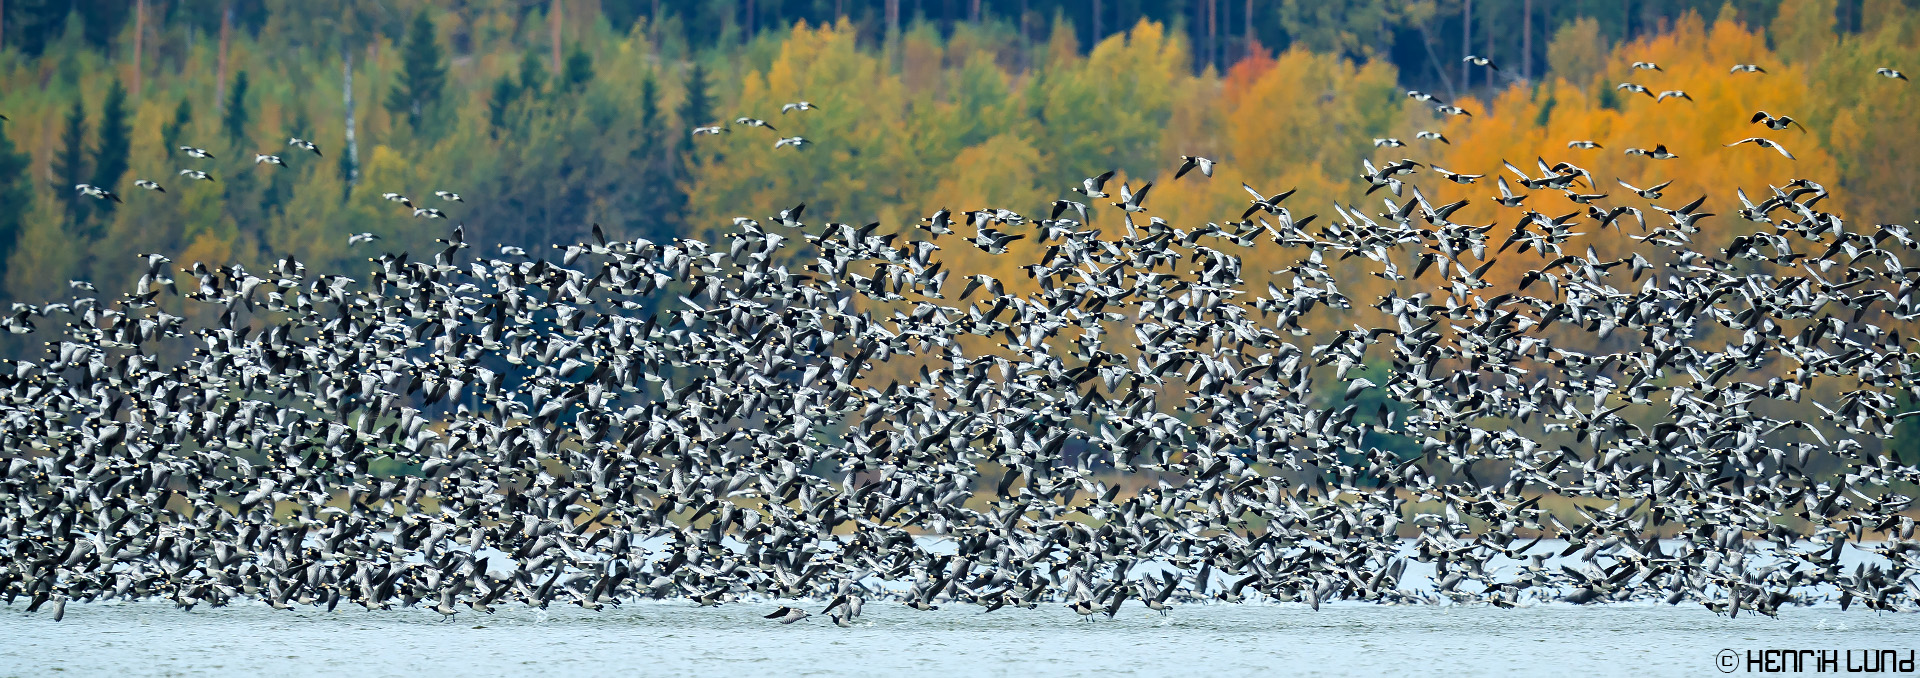 Thousands of barnacle geese taking off lake Lapinjärvi. Finland. September 2016.